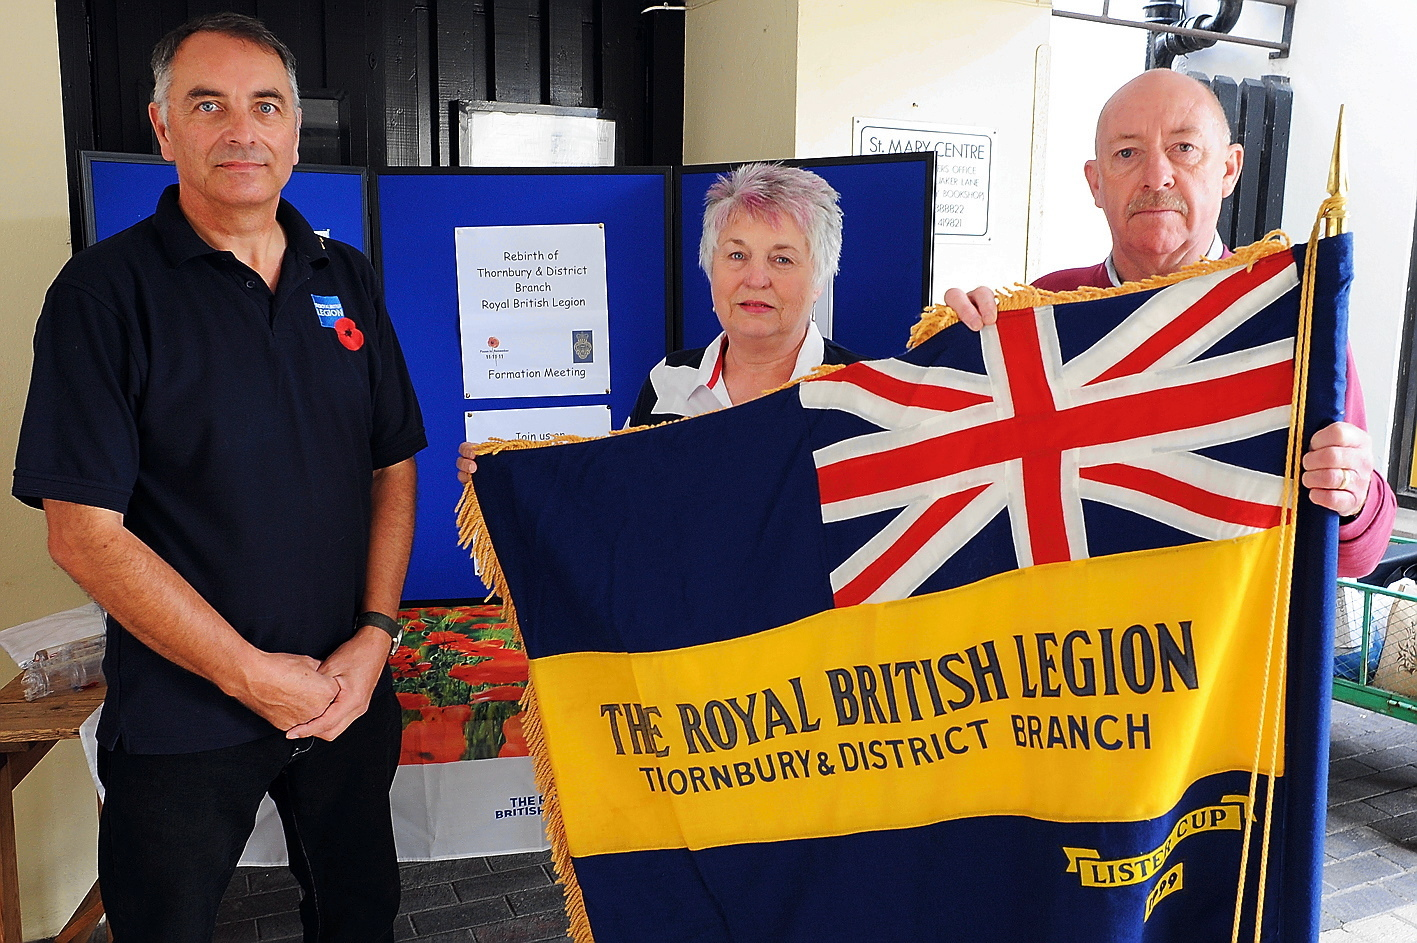 Andrew Cooper, Janice Jackson and Jeff Evans who have succeeded in setting up the British Legion again in Thornbury